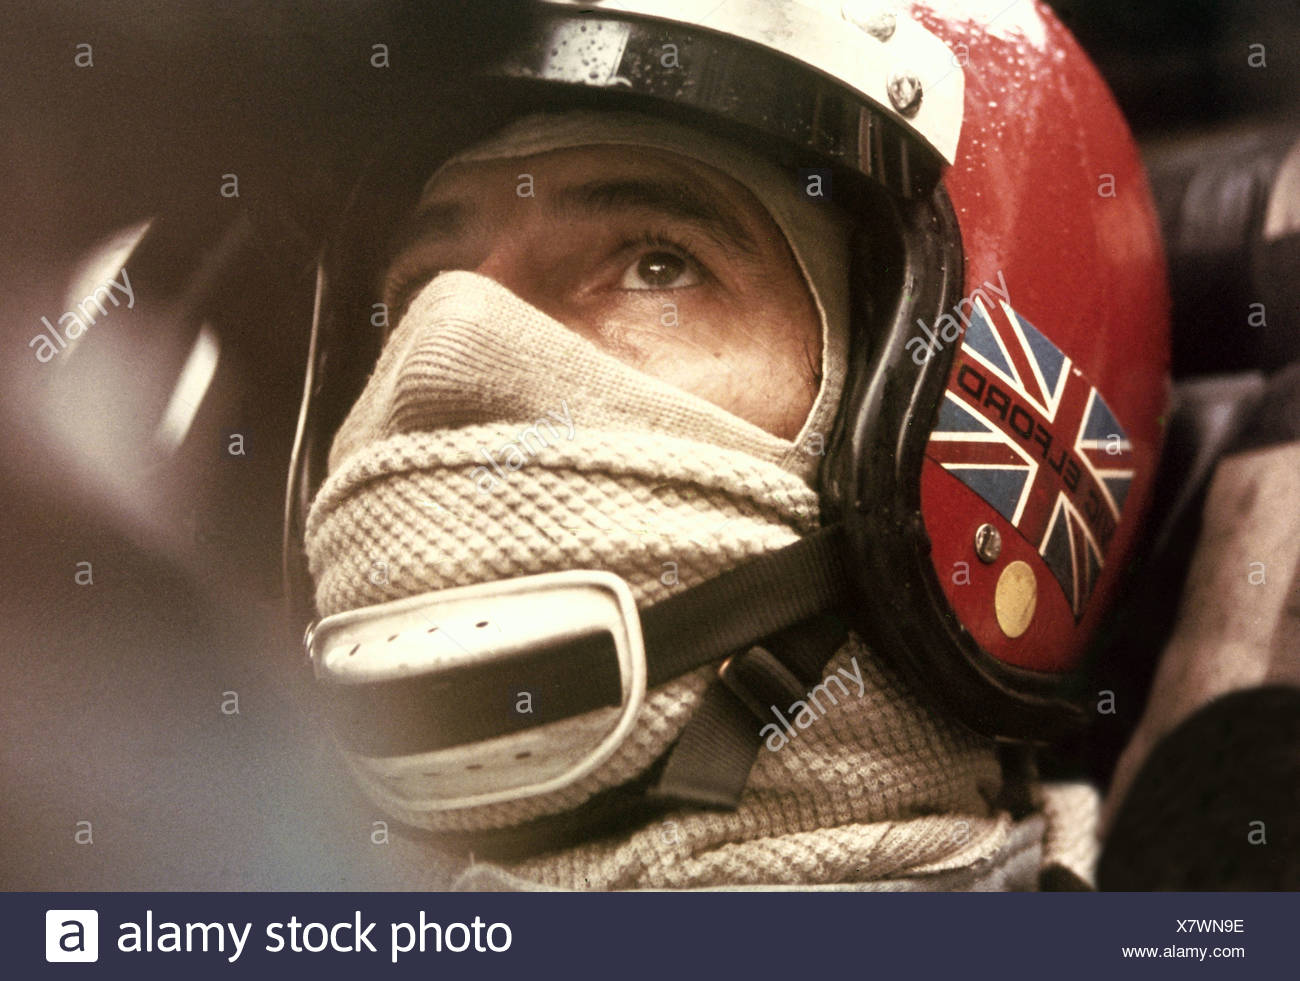 Elford, Vic, * 10.6.1935, Britain athlete, (automobile racer), racing car, Monza, 1971, Additional-Rights-Clearances-NA - Stock Image